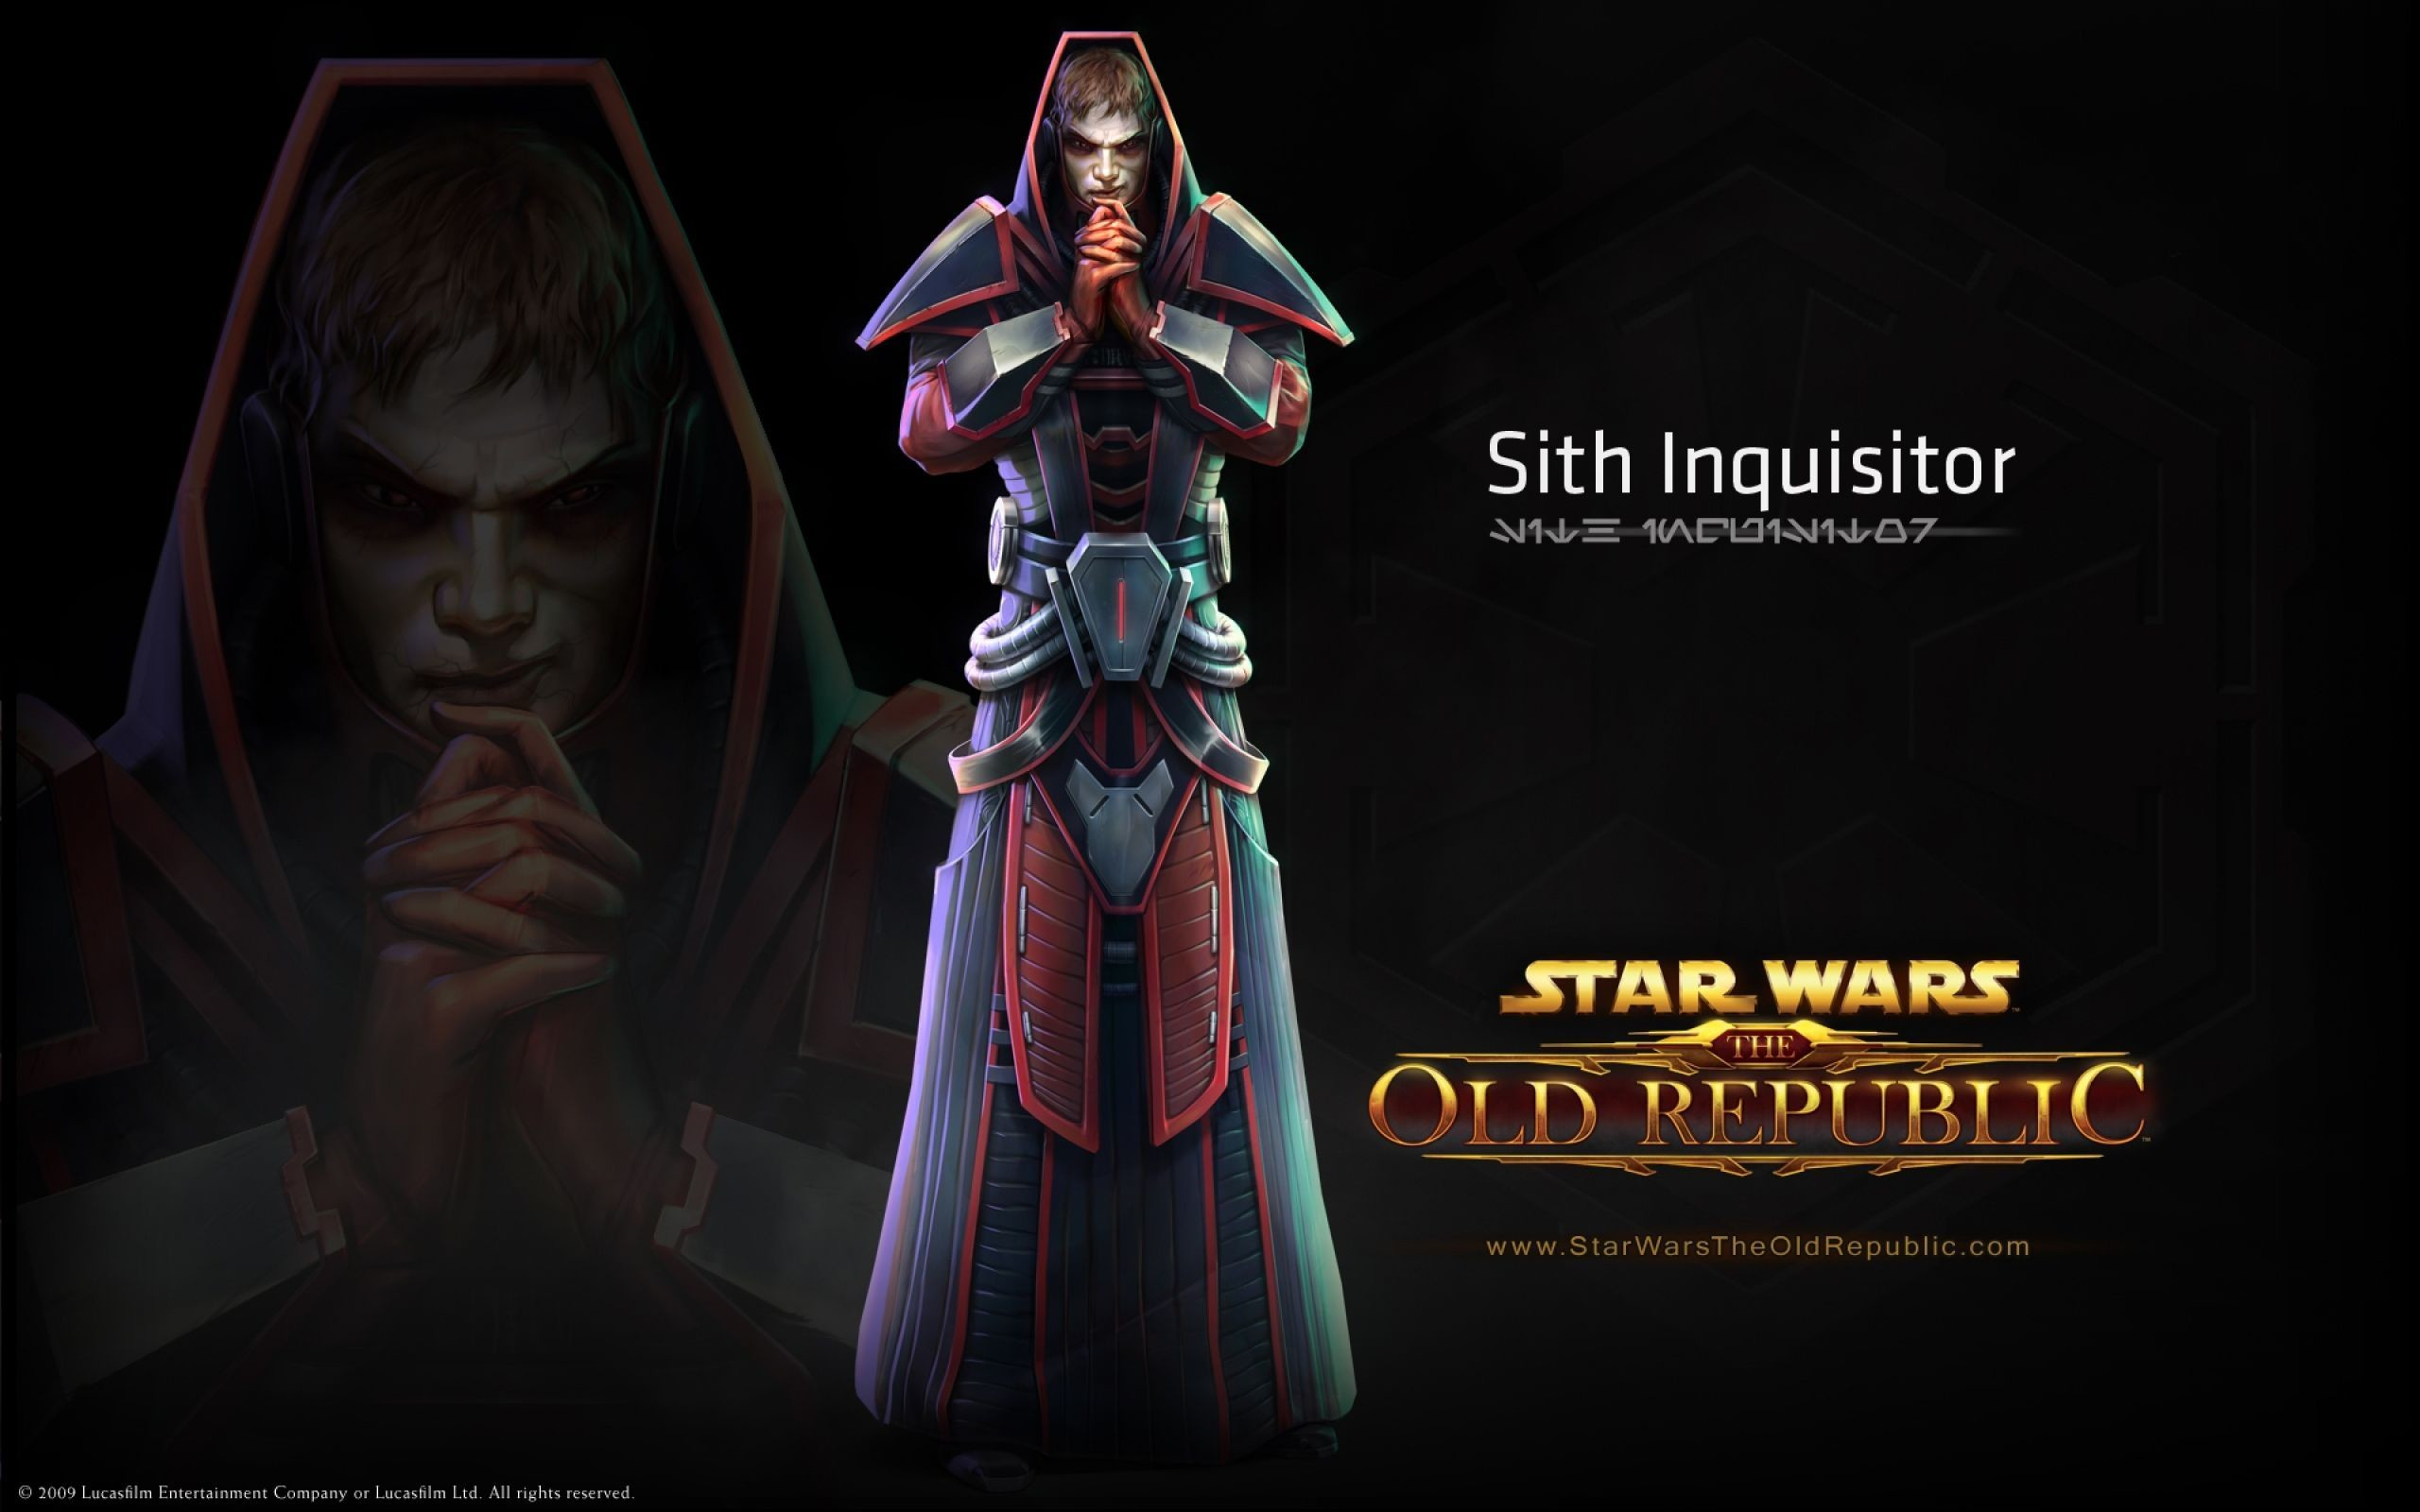 Sith Inquisitor: Swtor Computer Wallpapers, Desktop Backgrounds .